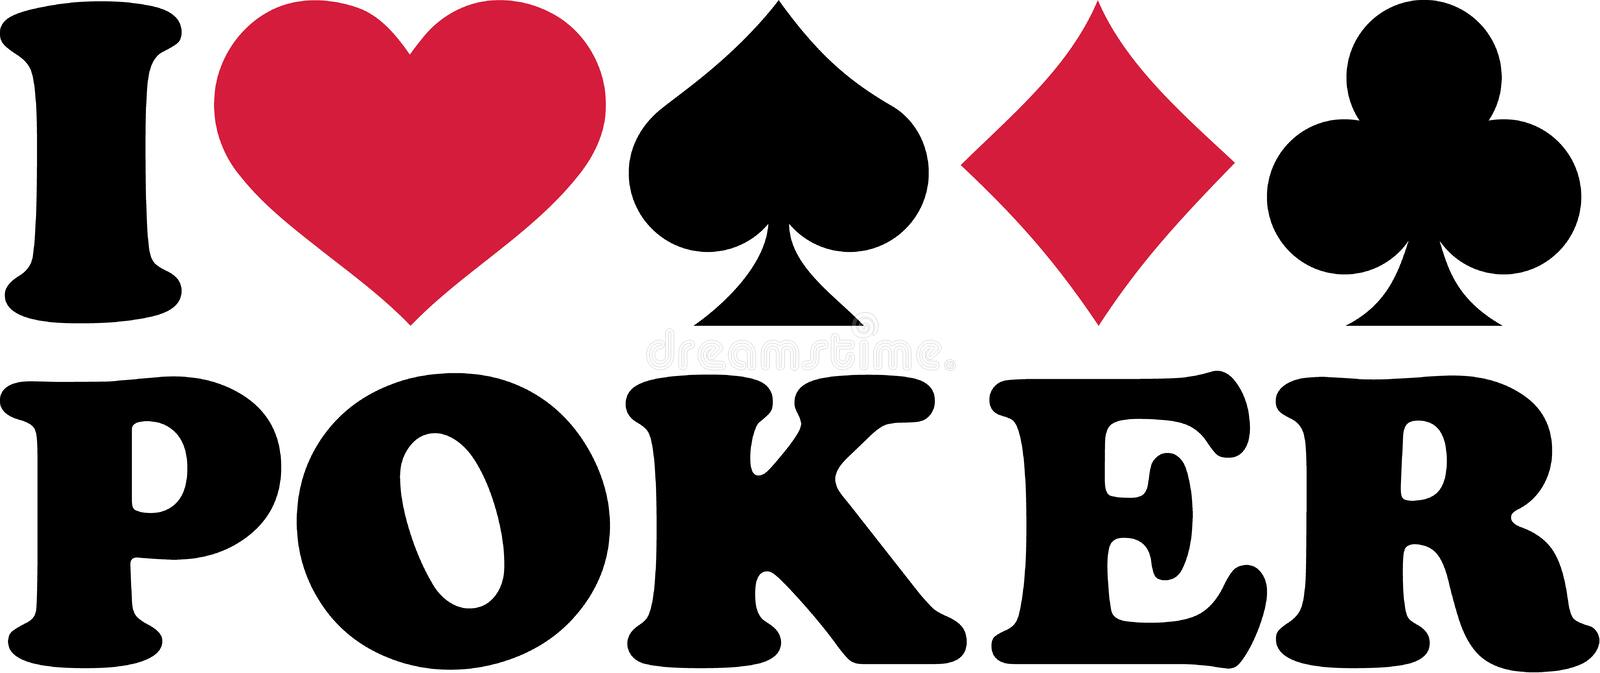 Poker with four suits of cards vector illustration